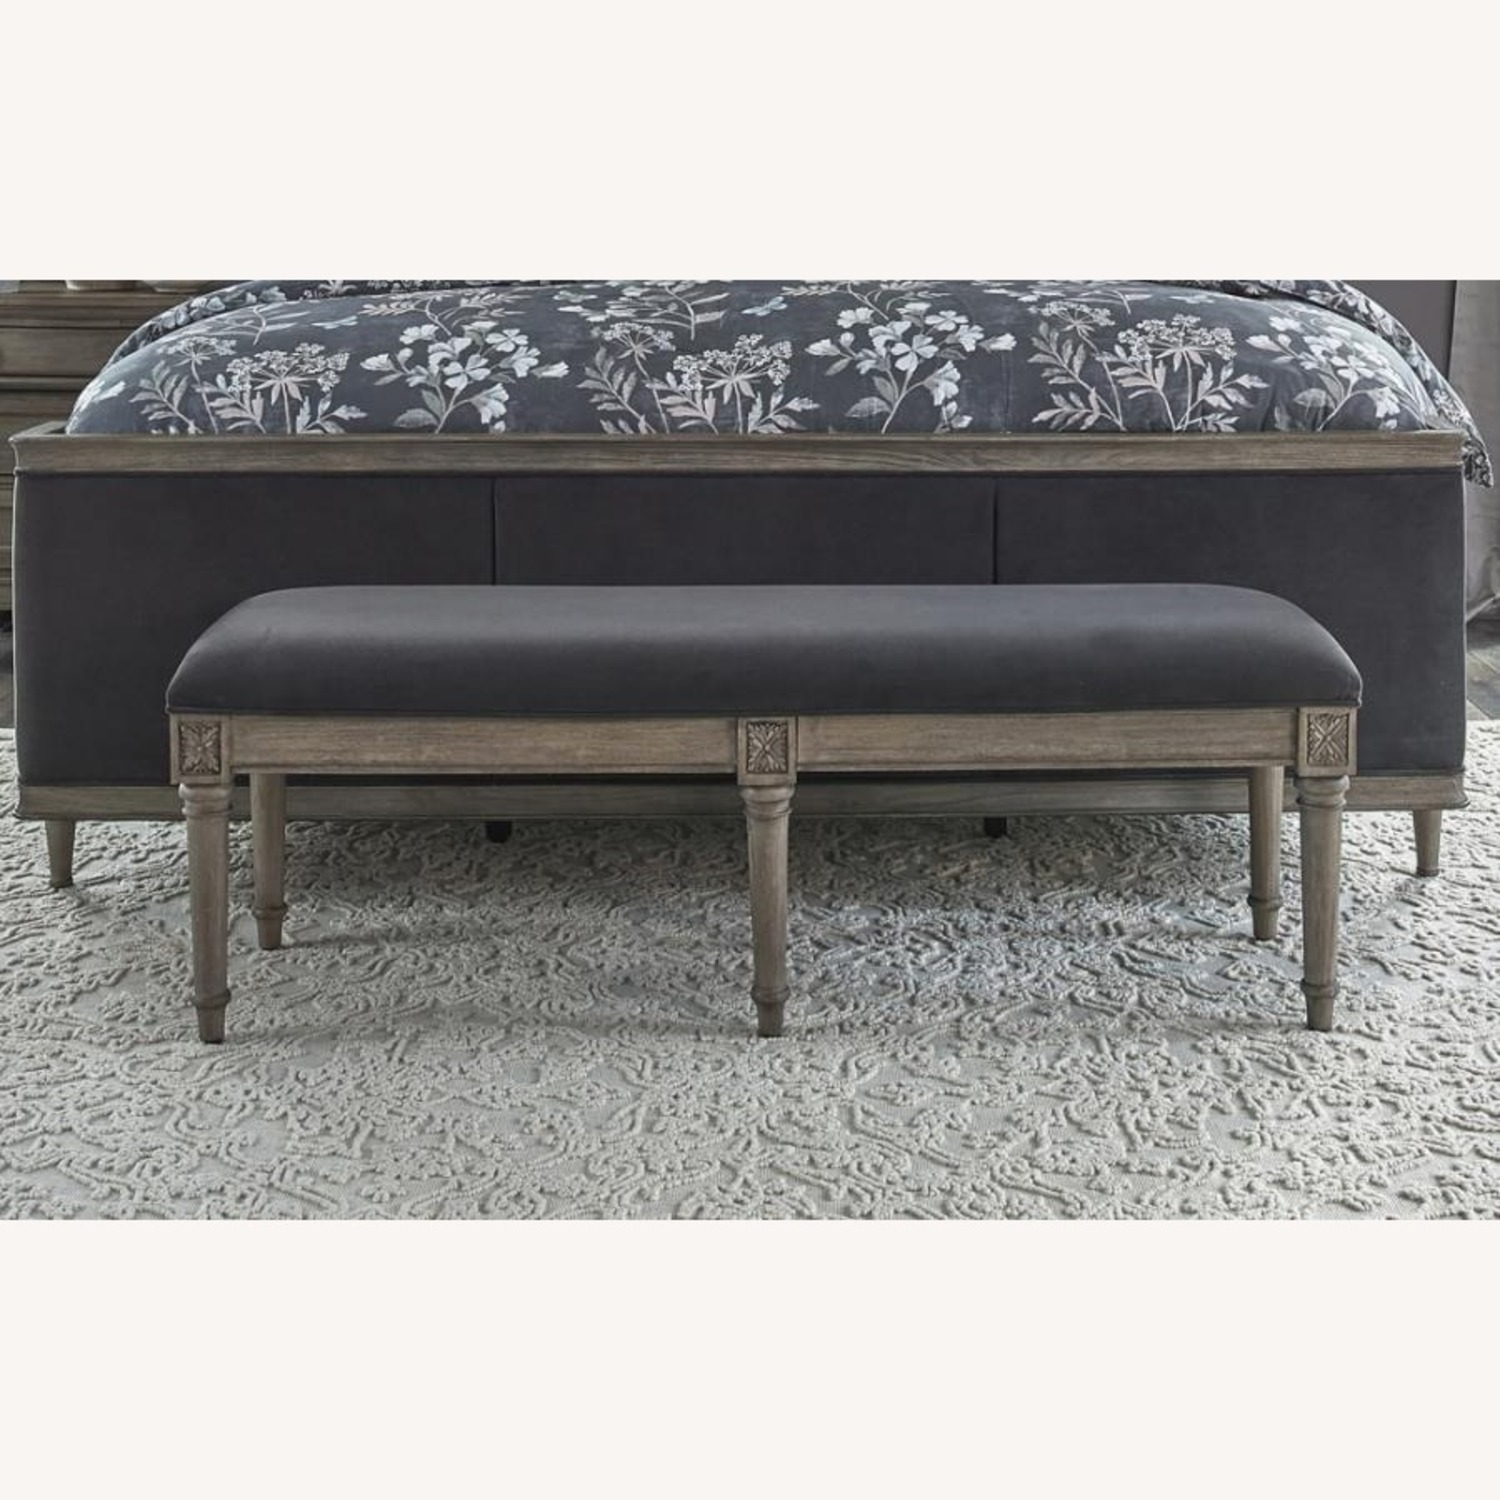 Bench In Grey Upholstery W/ Natural Wood Legs - image-1